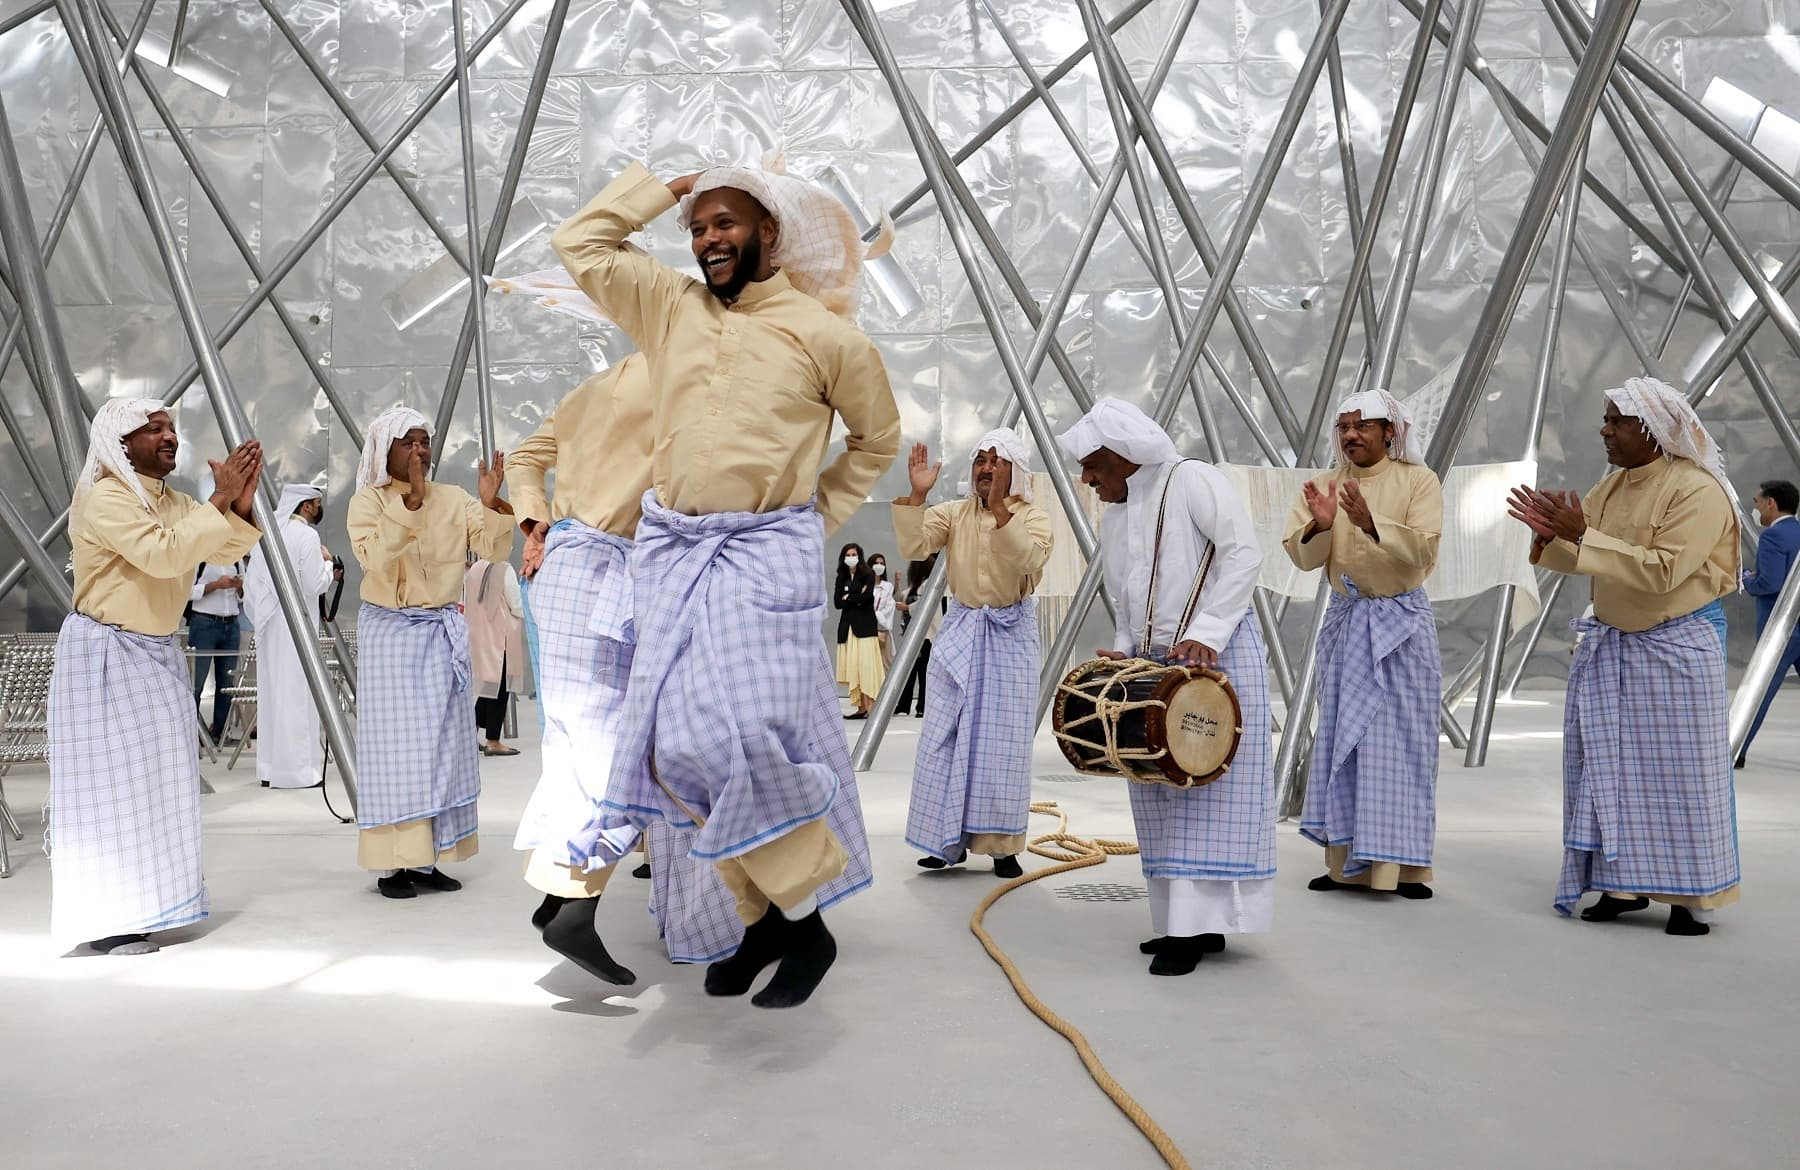 Dancers perform during the opening ceremony of the Bahraini pavilion at the Expo 2020. — AFP